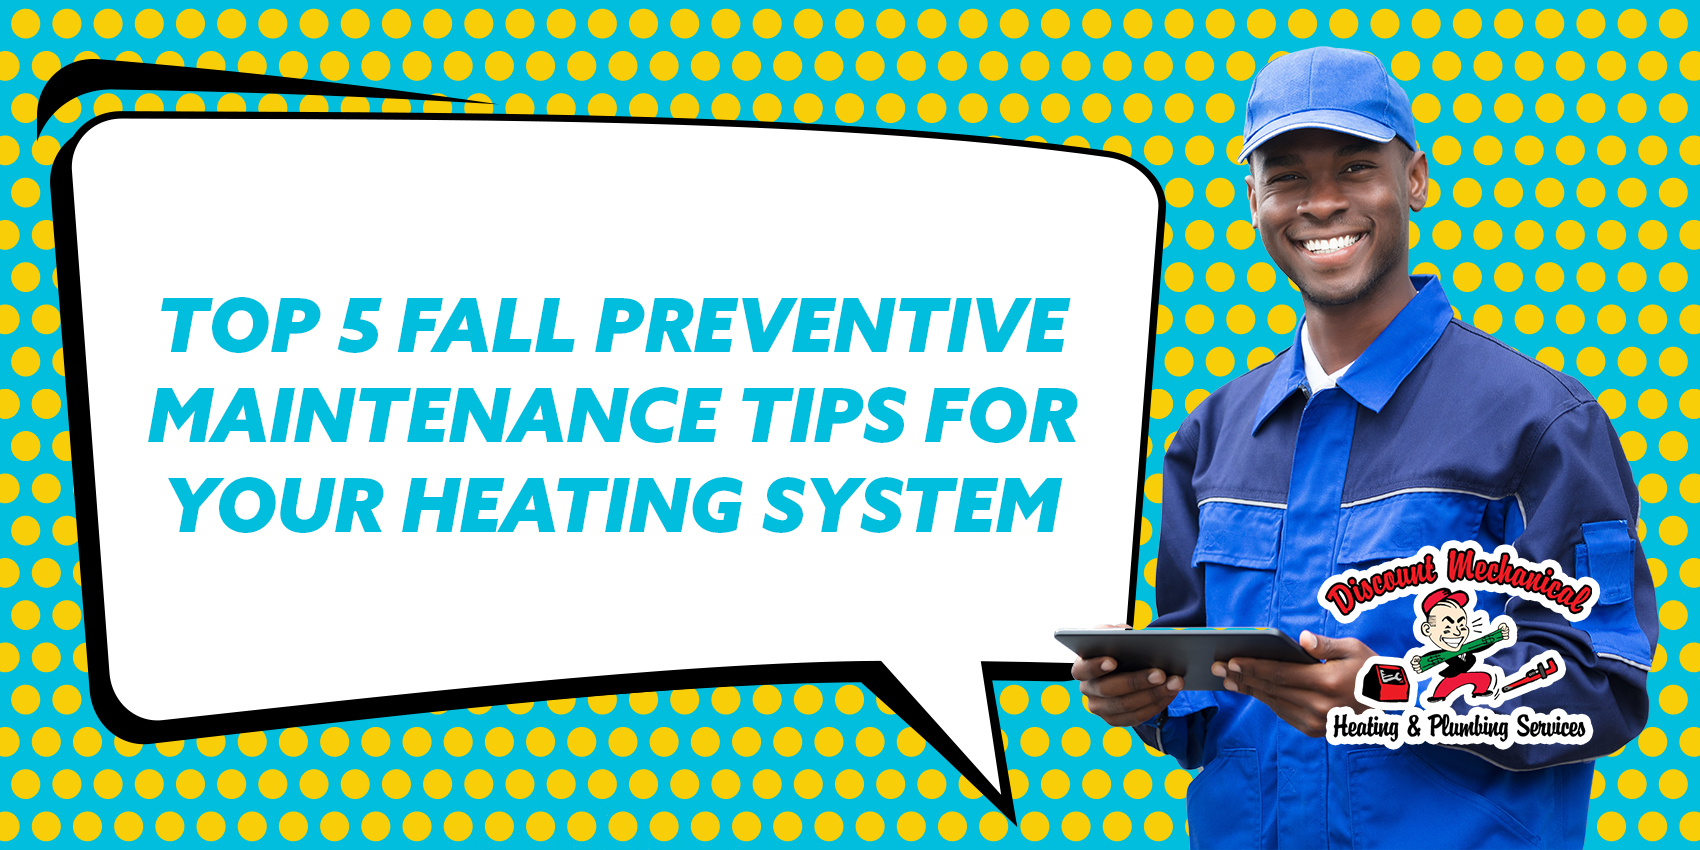 Top 5 Fall Preventive Maintenance Tips For Your Heating System